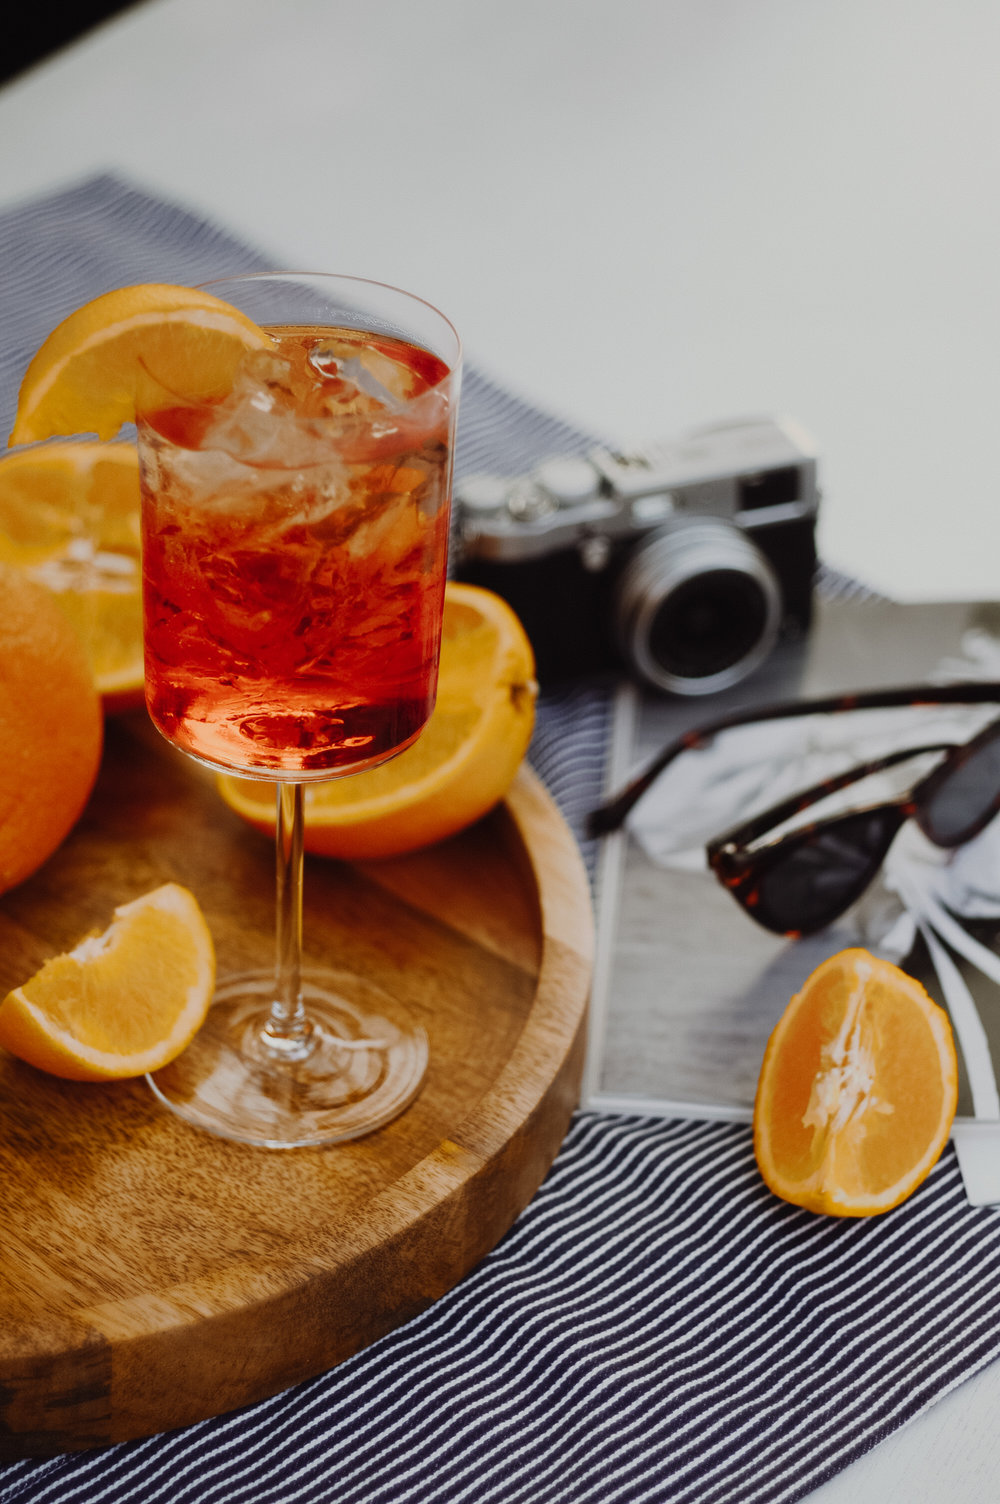 HOW-TO APEROL SPRITZ COCKTAIL - - Ice- Aperol- Prosecco DOC- Soda Water- Orange (sliced)Fill a wine glass with ice chips. Next, pour equal parts Prosecco and Aperol. Add a dash of soda water, being careful not to overfill the glass. Garnish with orange slice and enjoy!